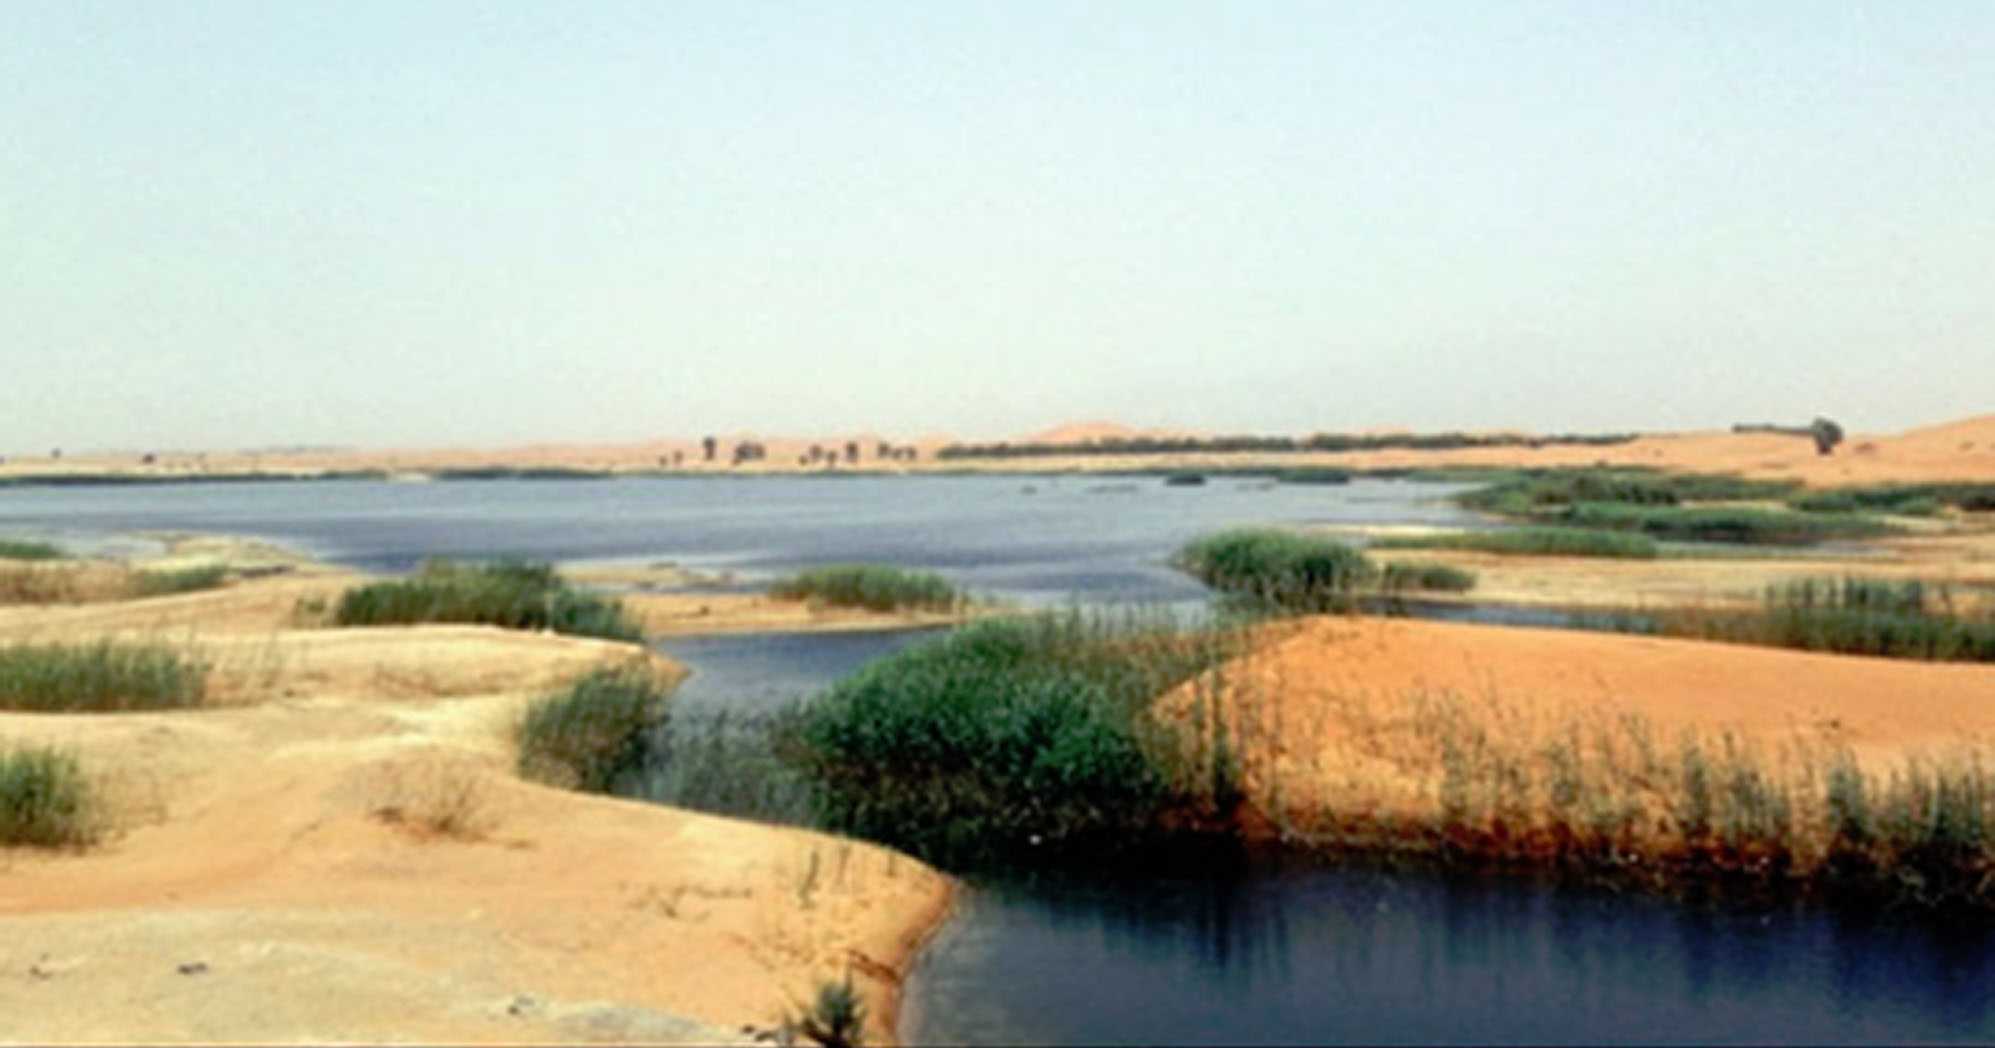 Global Surface Water Increased but Water Quality Remains a Concern